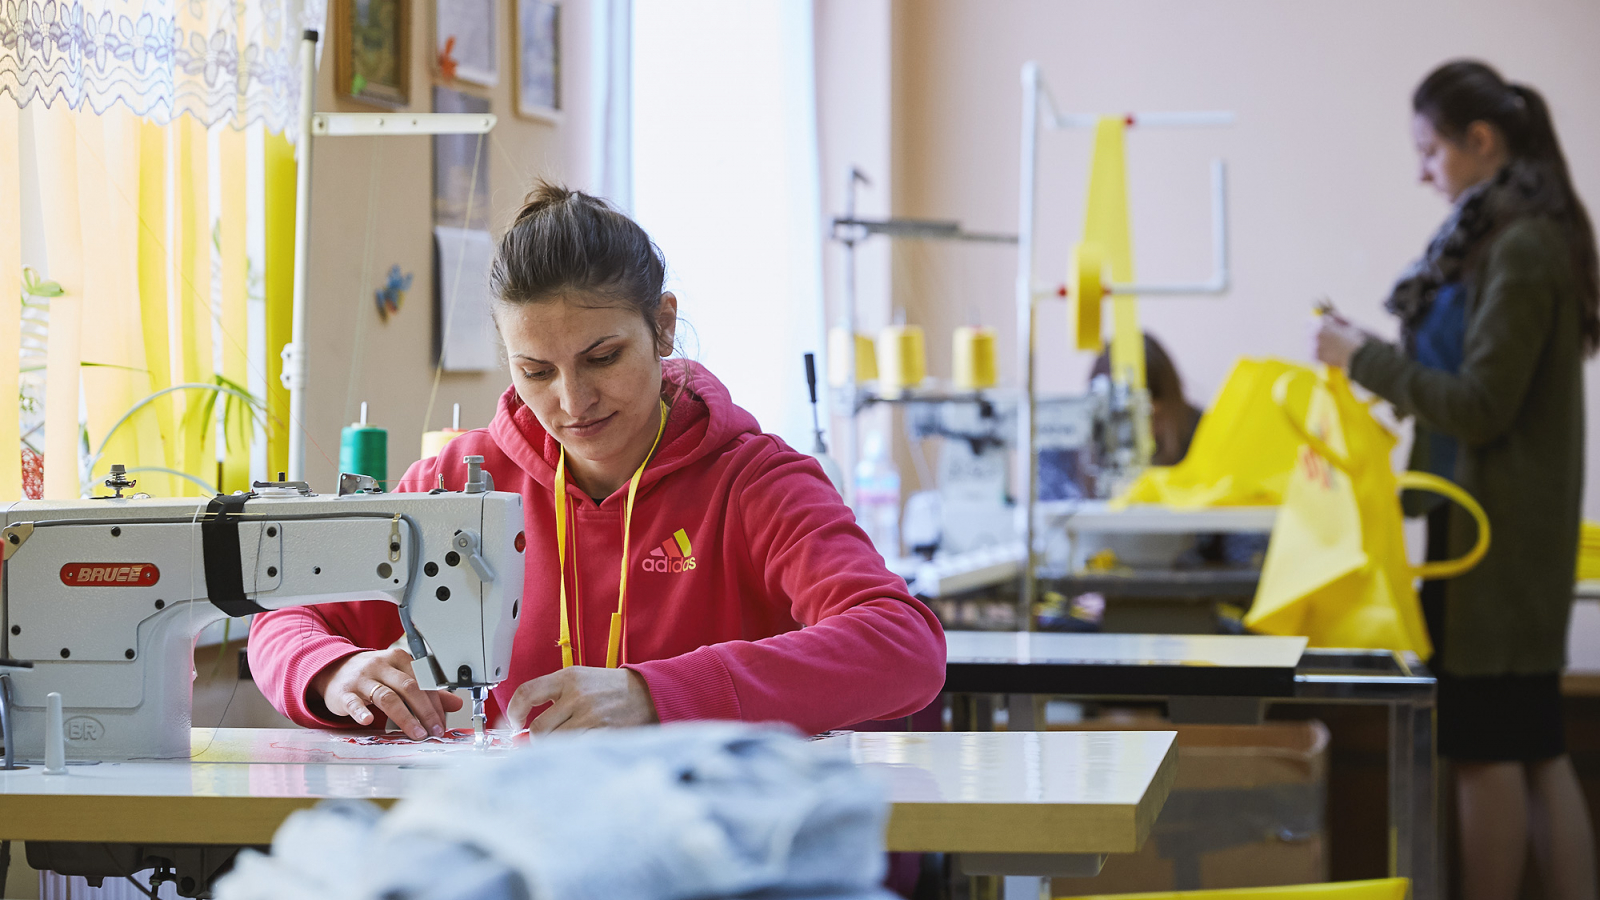 Lidia Birsanu's business grew from a simple clothing repair workshop